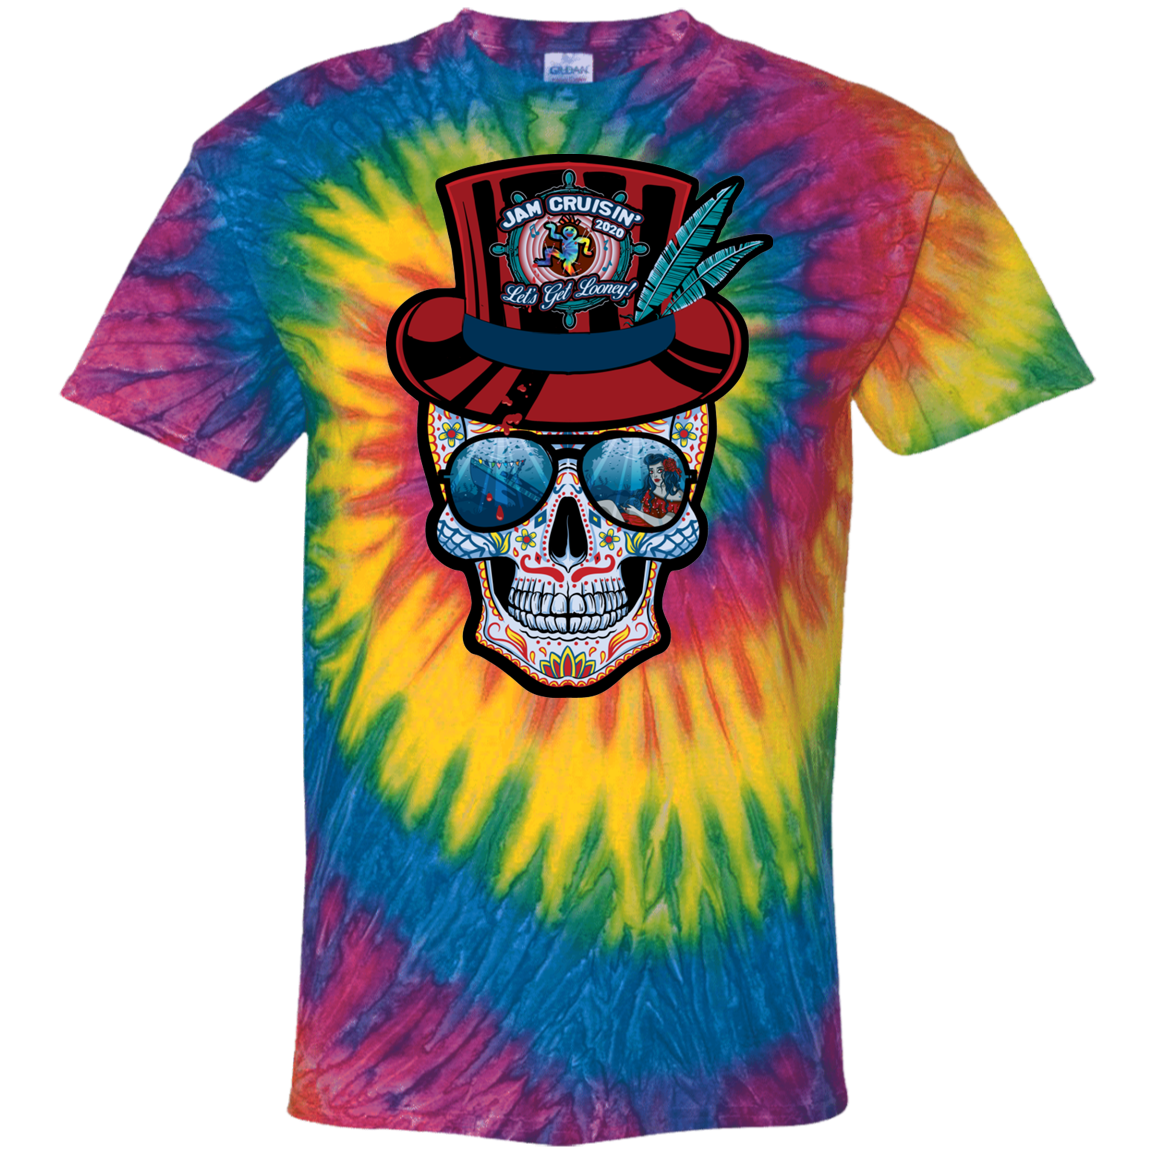 Jam Cruisin' 2020 Captain Looney Tie Dye T-Shirt